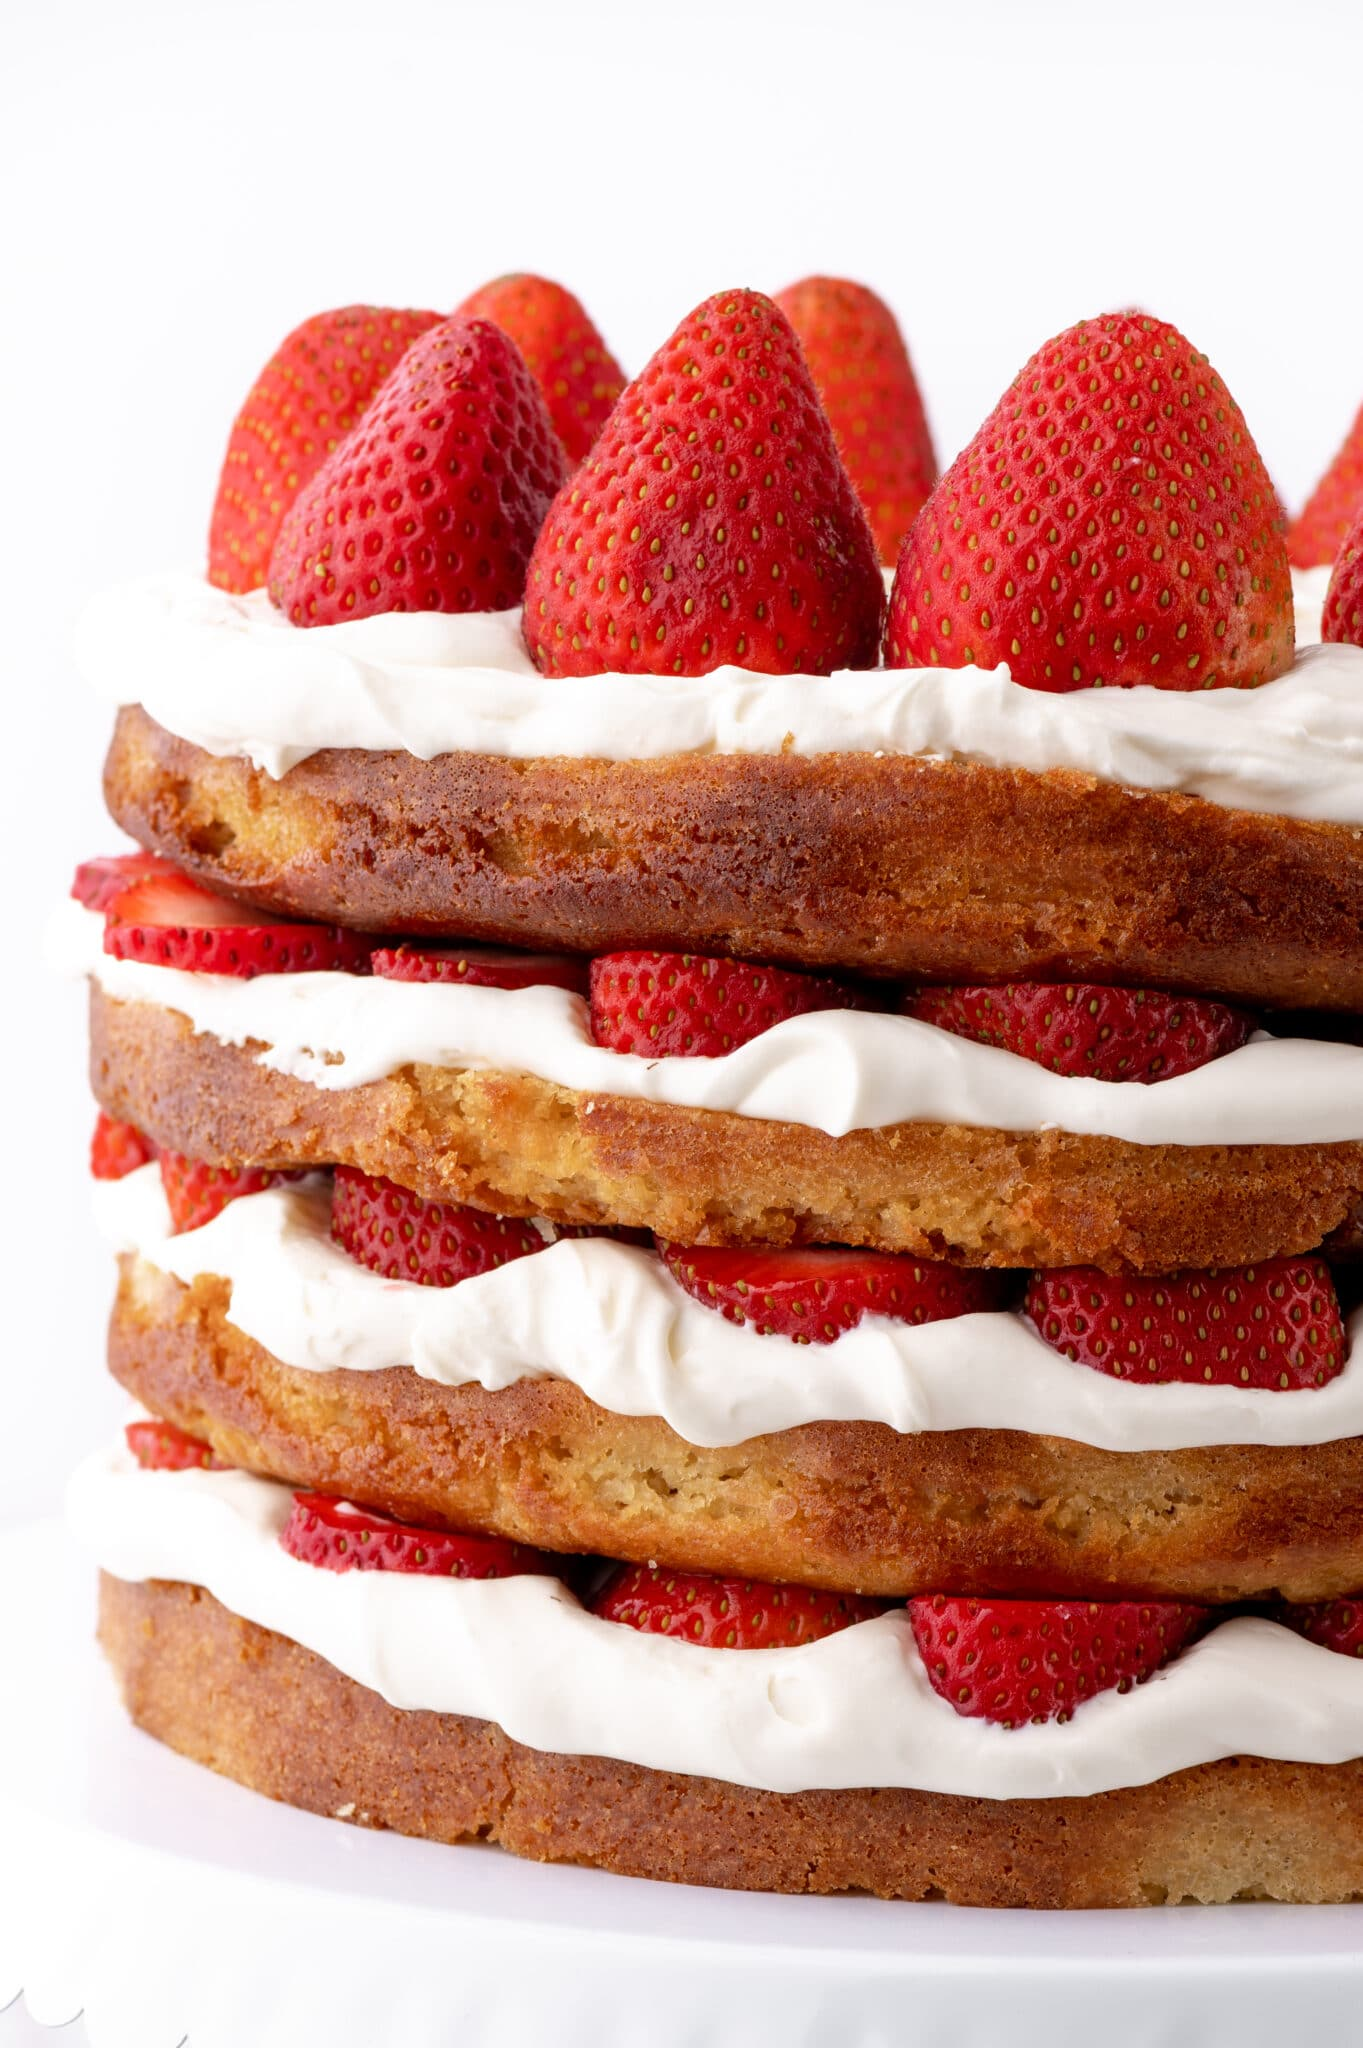 A four layer keto strawberry shortcake with fresh strawberries and whipped cream against a bright white background.